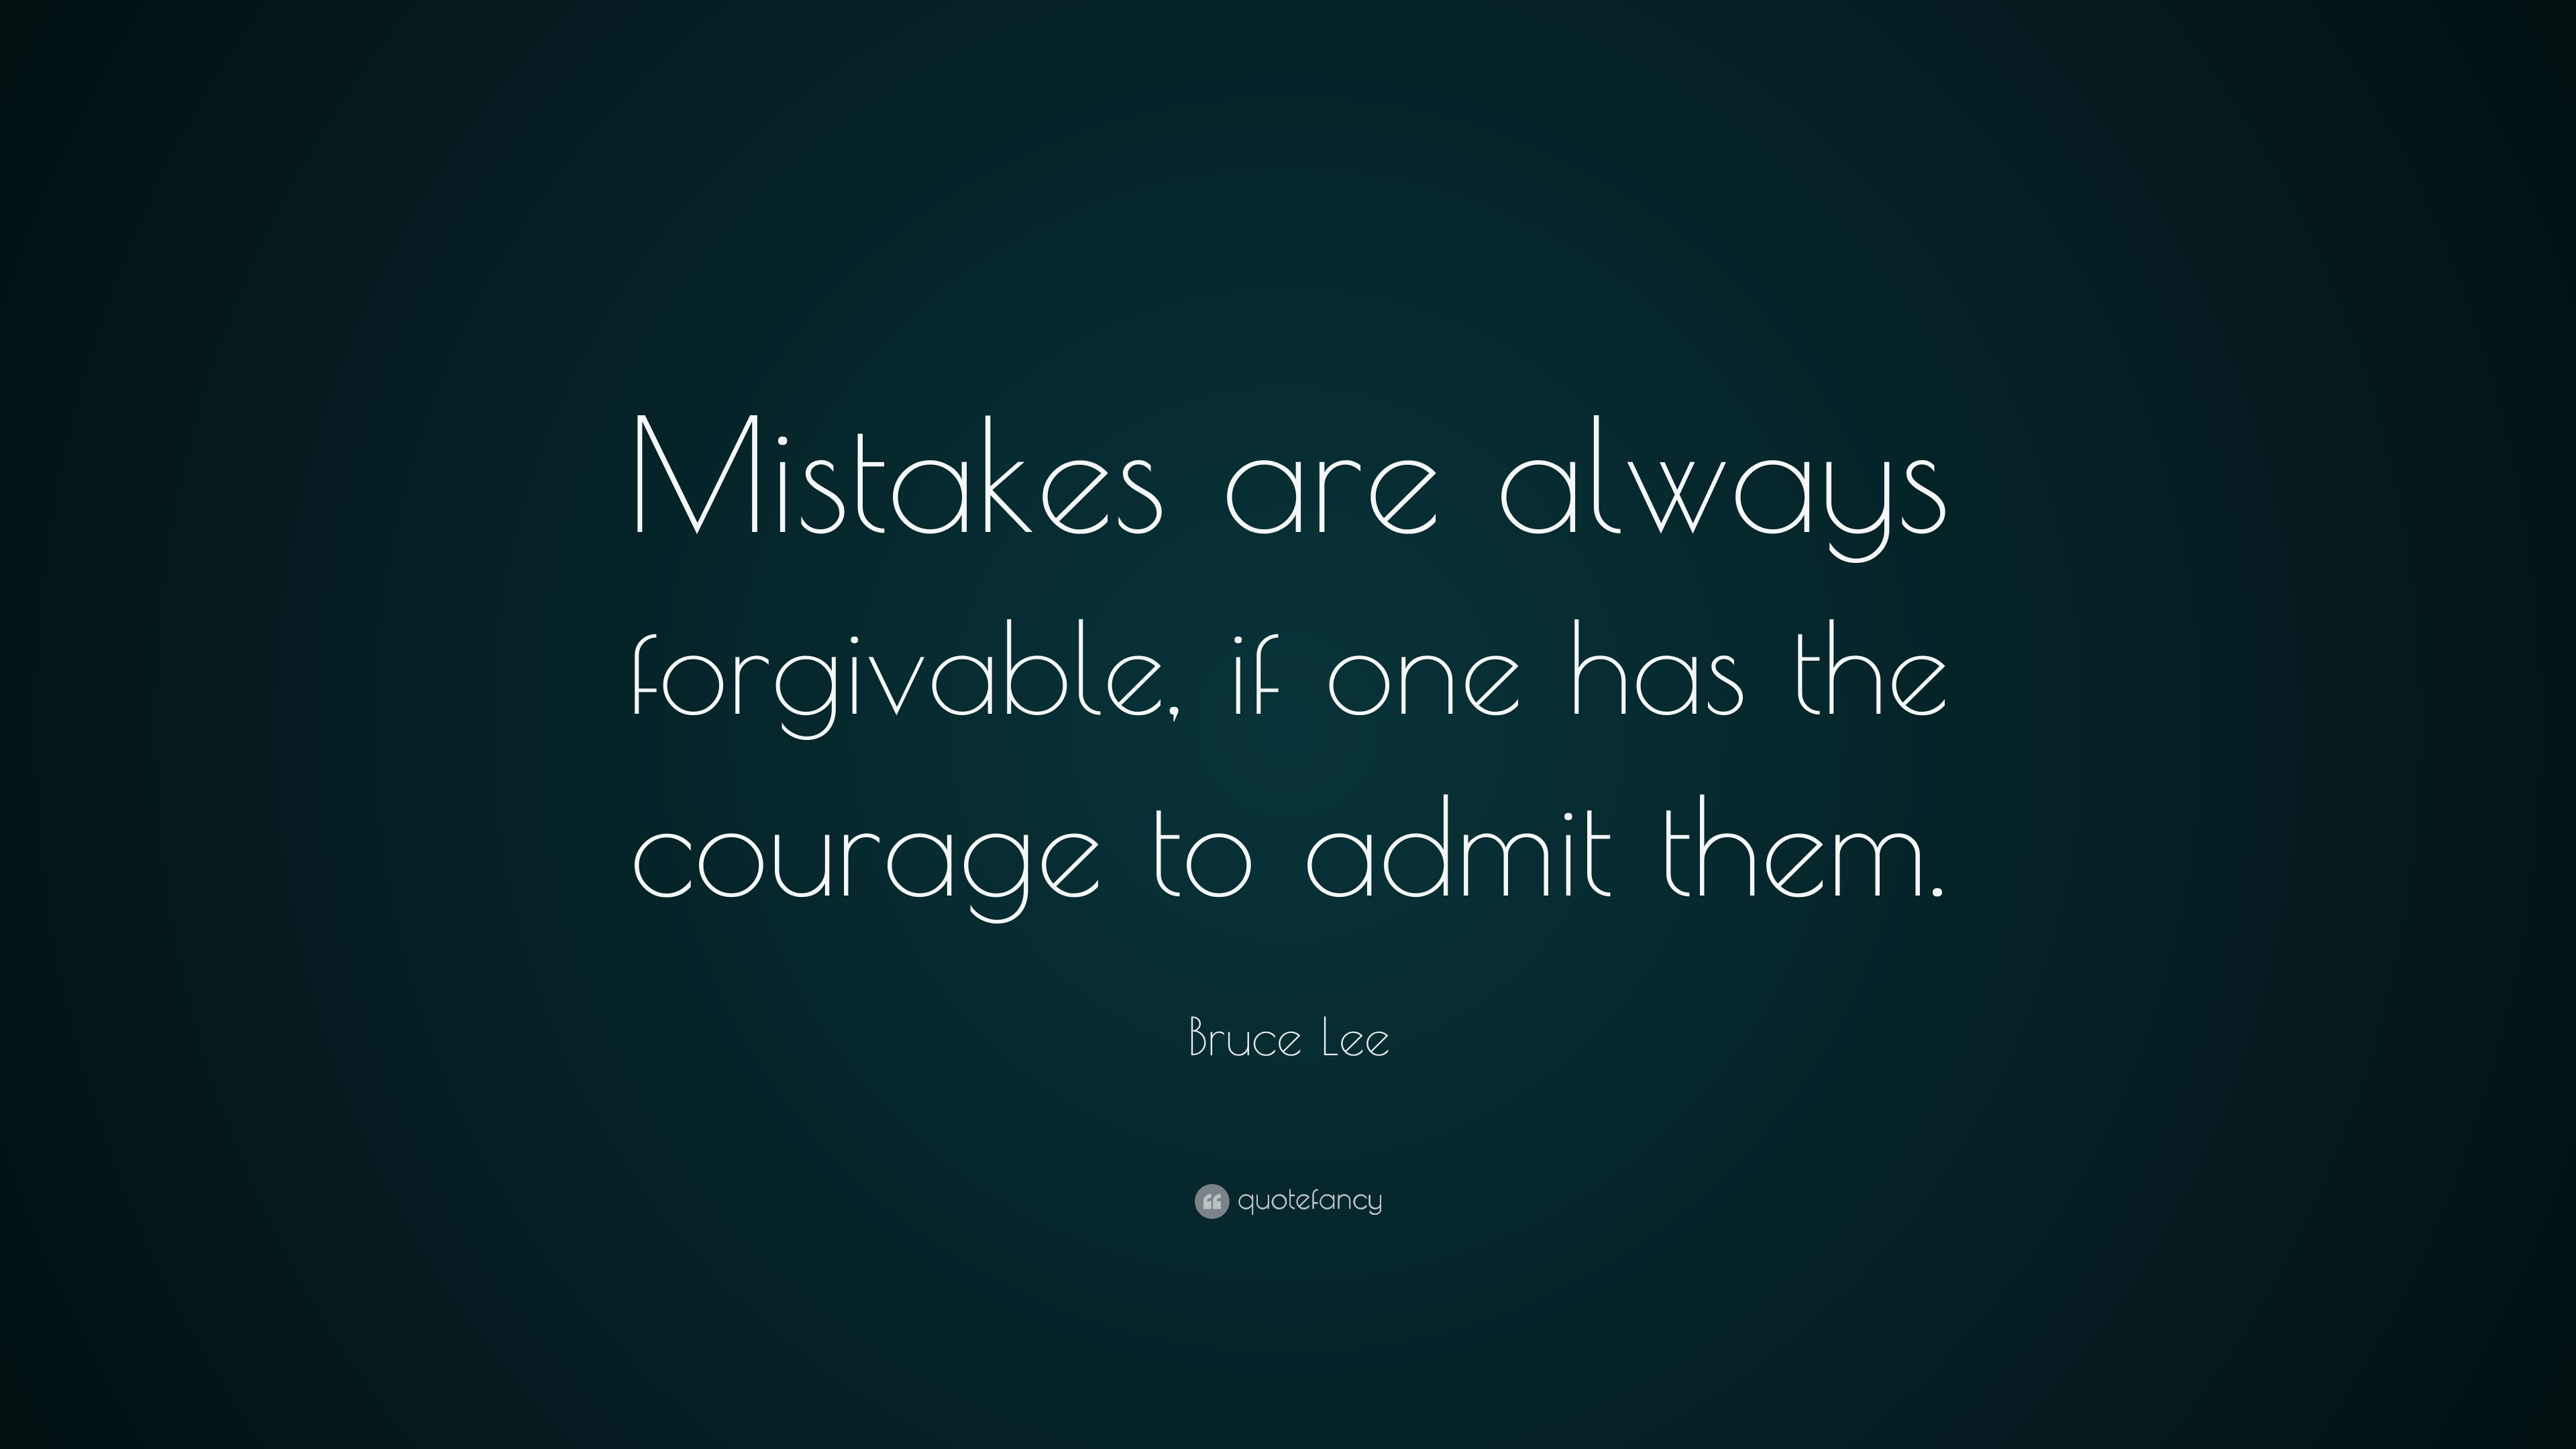 Bruce Lee Mistakes Are Always Forgivable